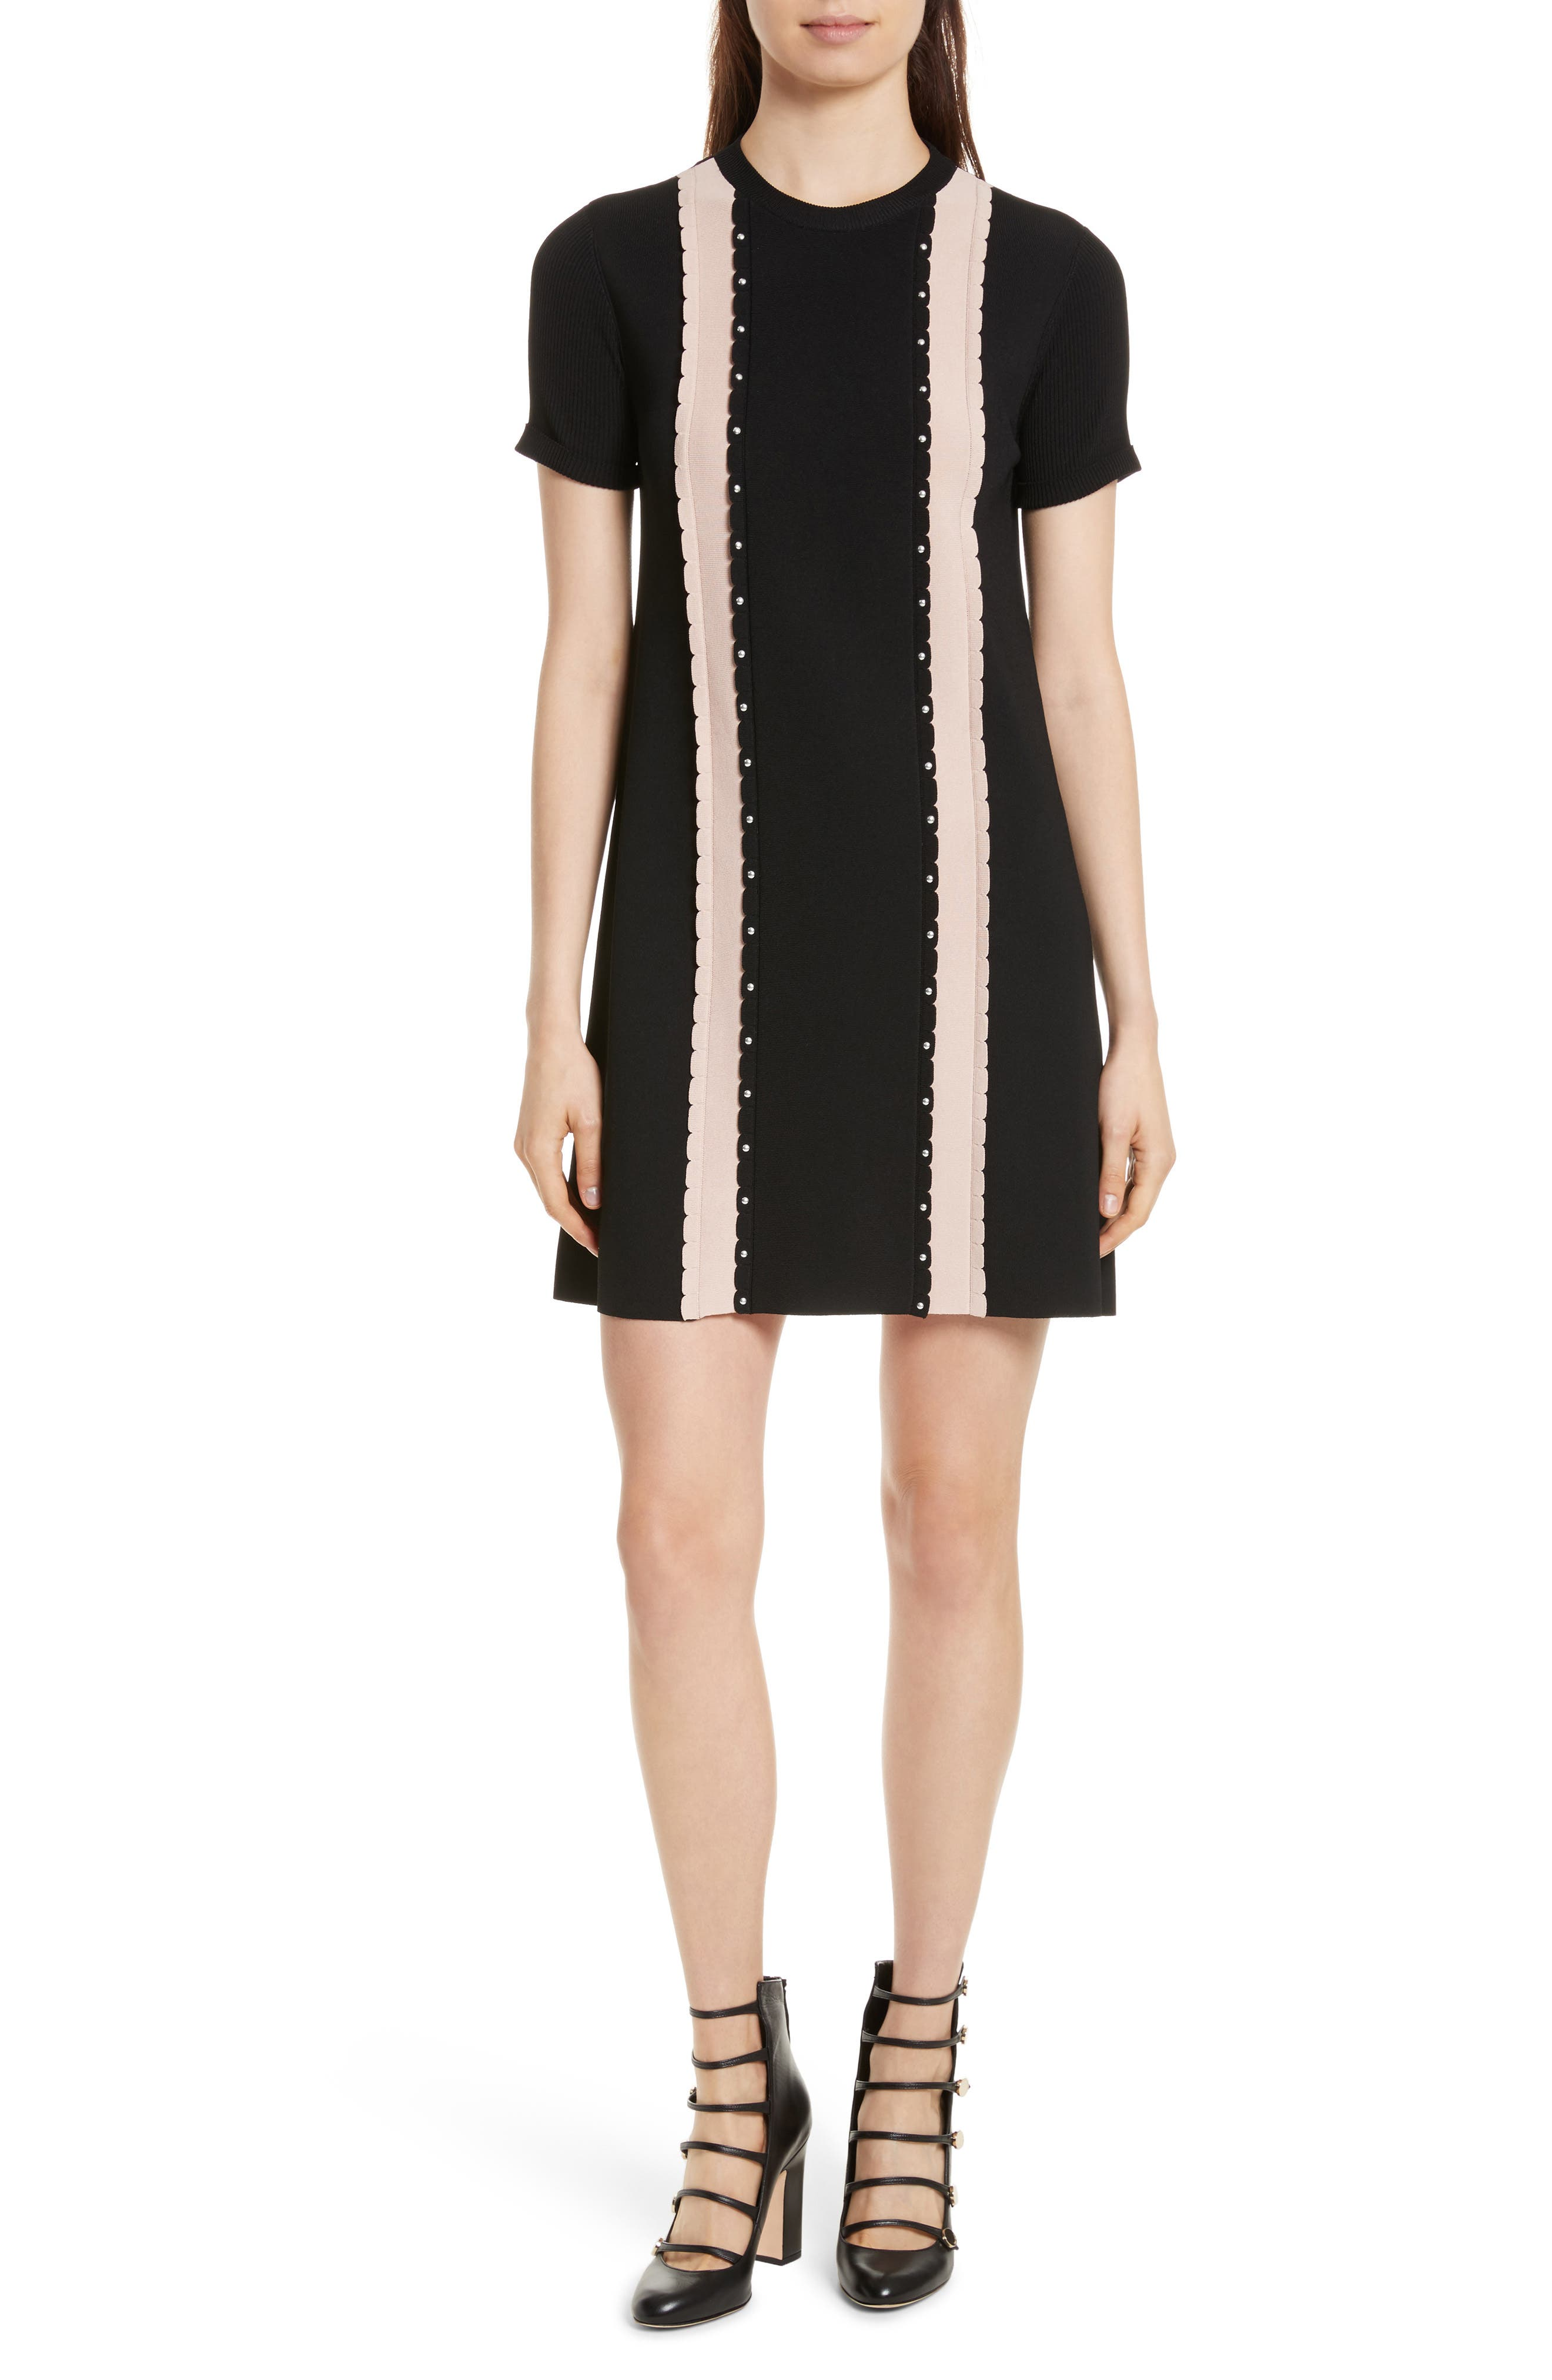 Main Image - RED Valentino Scallop Stretch Knit Dress